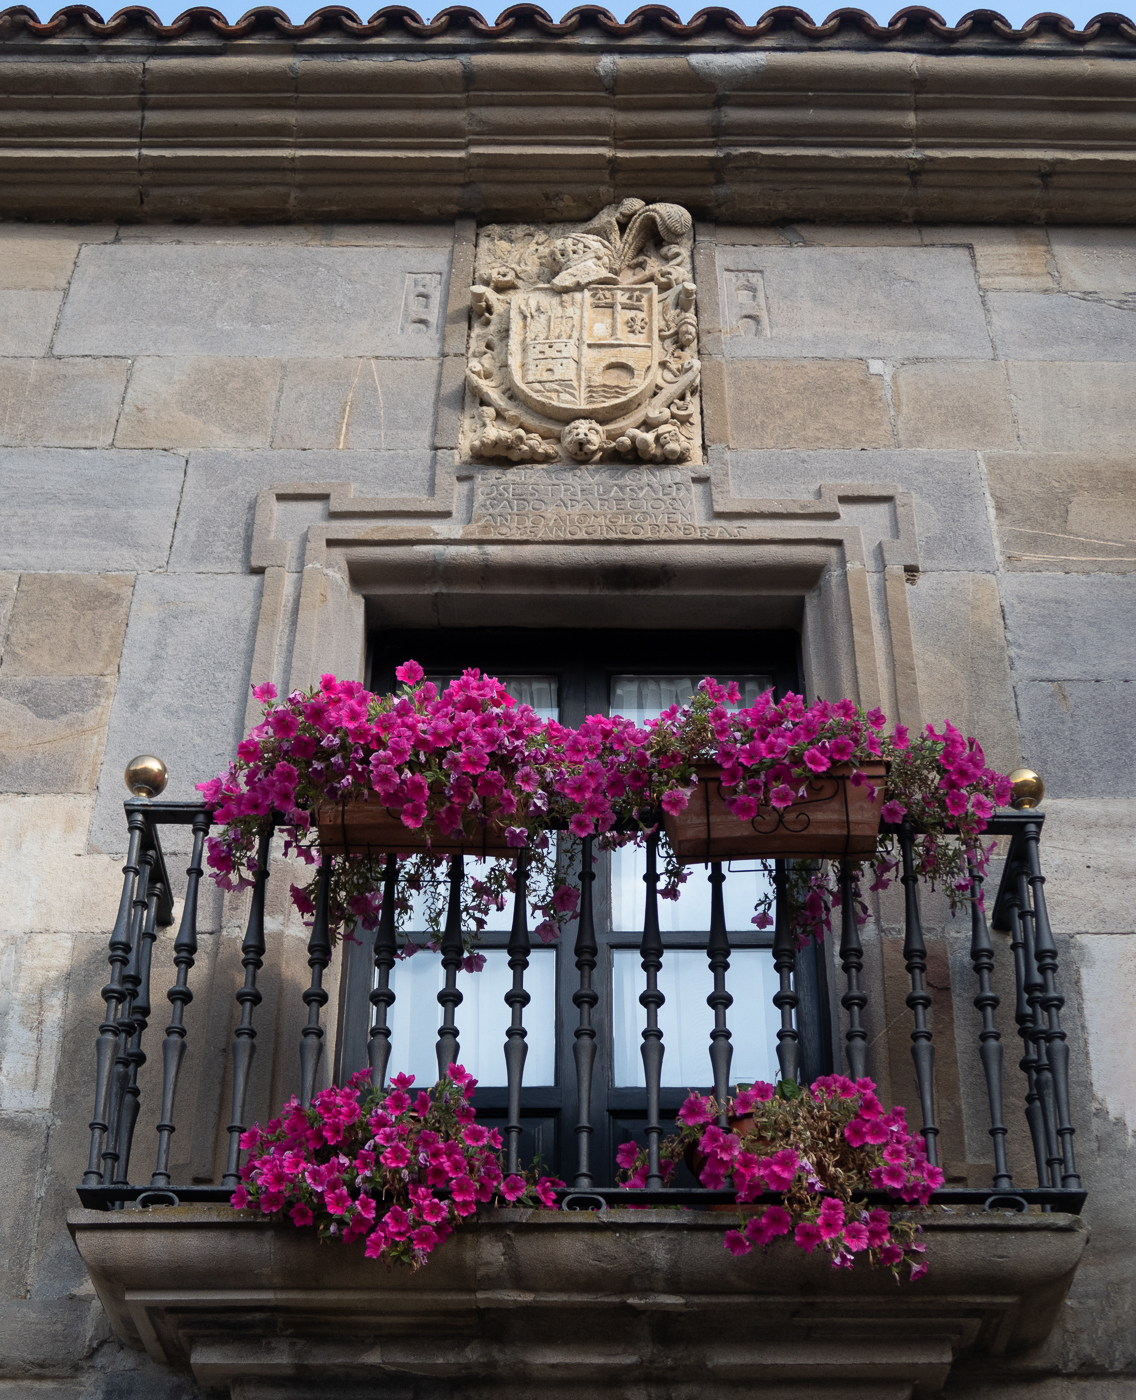 Balcony, flowers, coat of arms